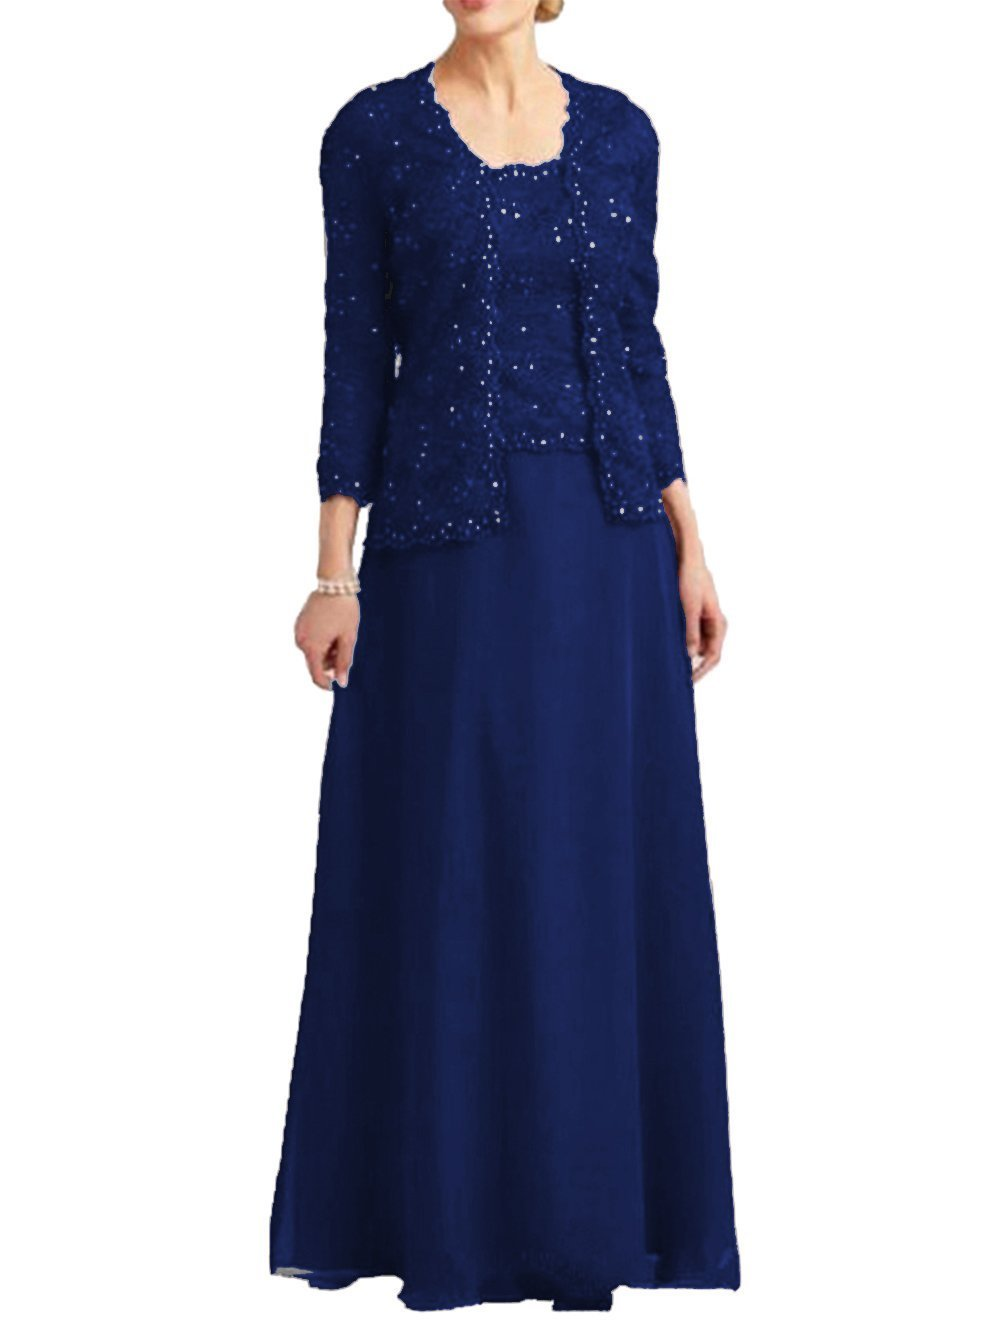 Dressyu Lace Mother of The Bride Dress with Jacket Beaded Long Vintage Chiffon Formal Gown Royal Blue US22W